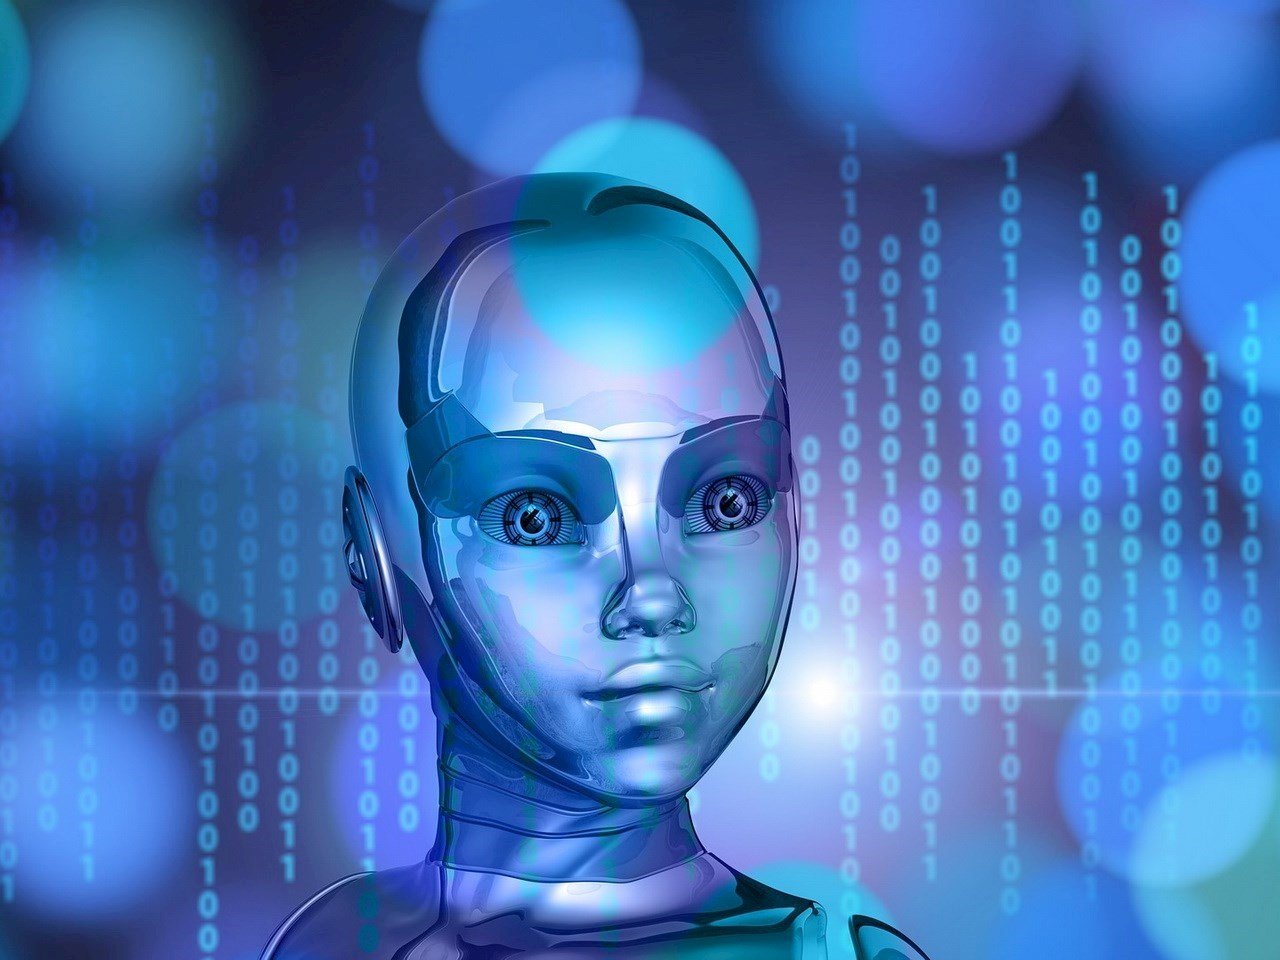 Illustration of a robot with artificial intelligence